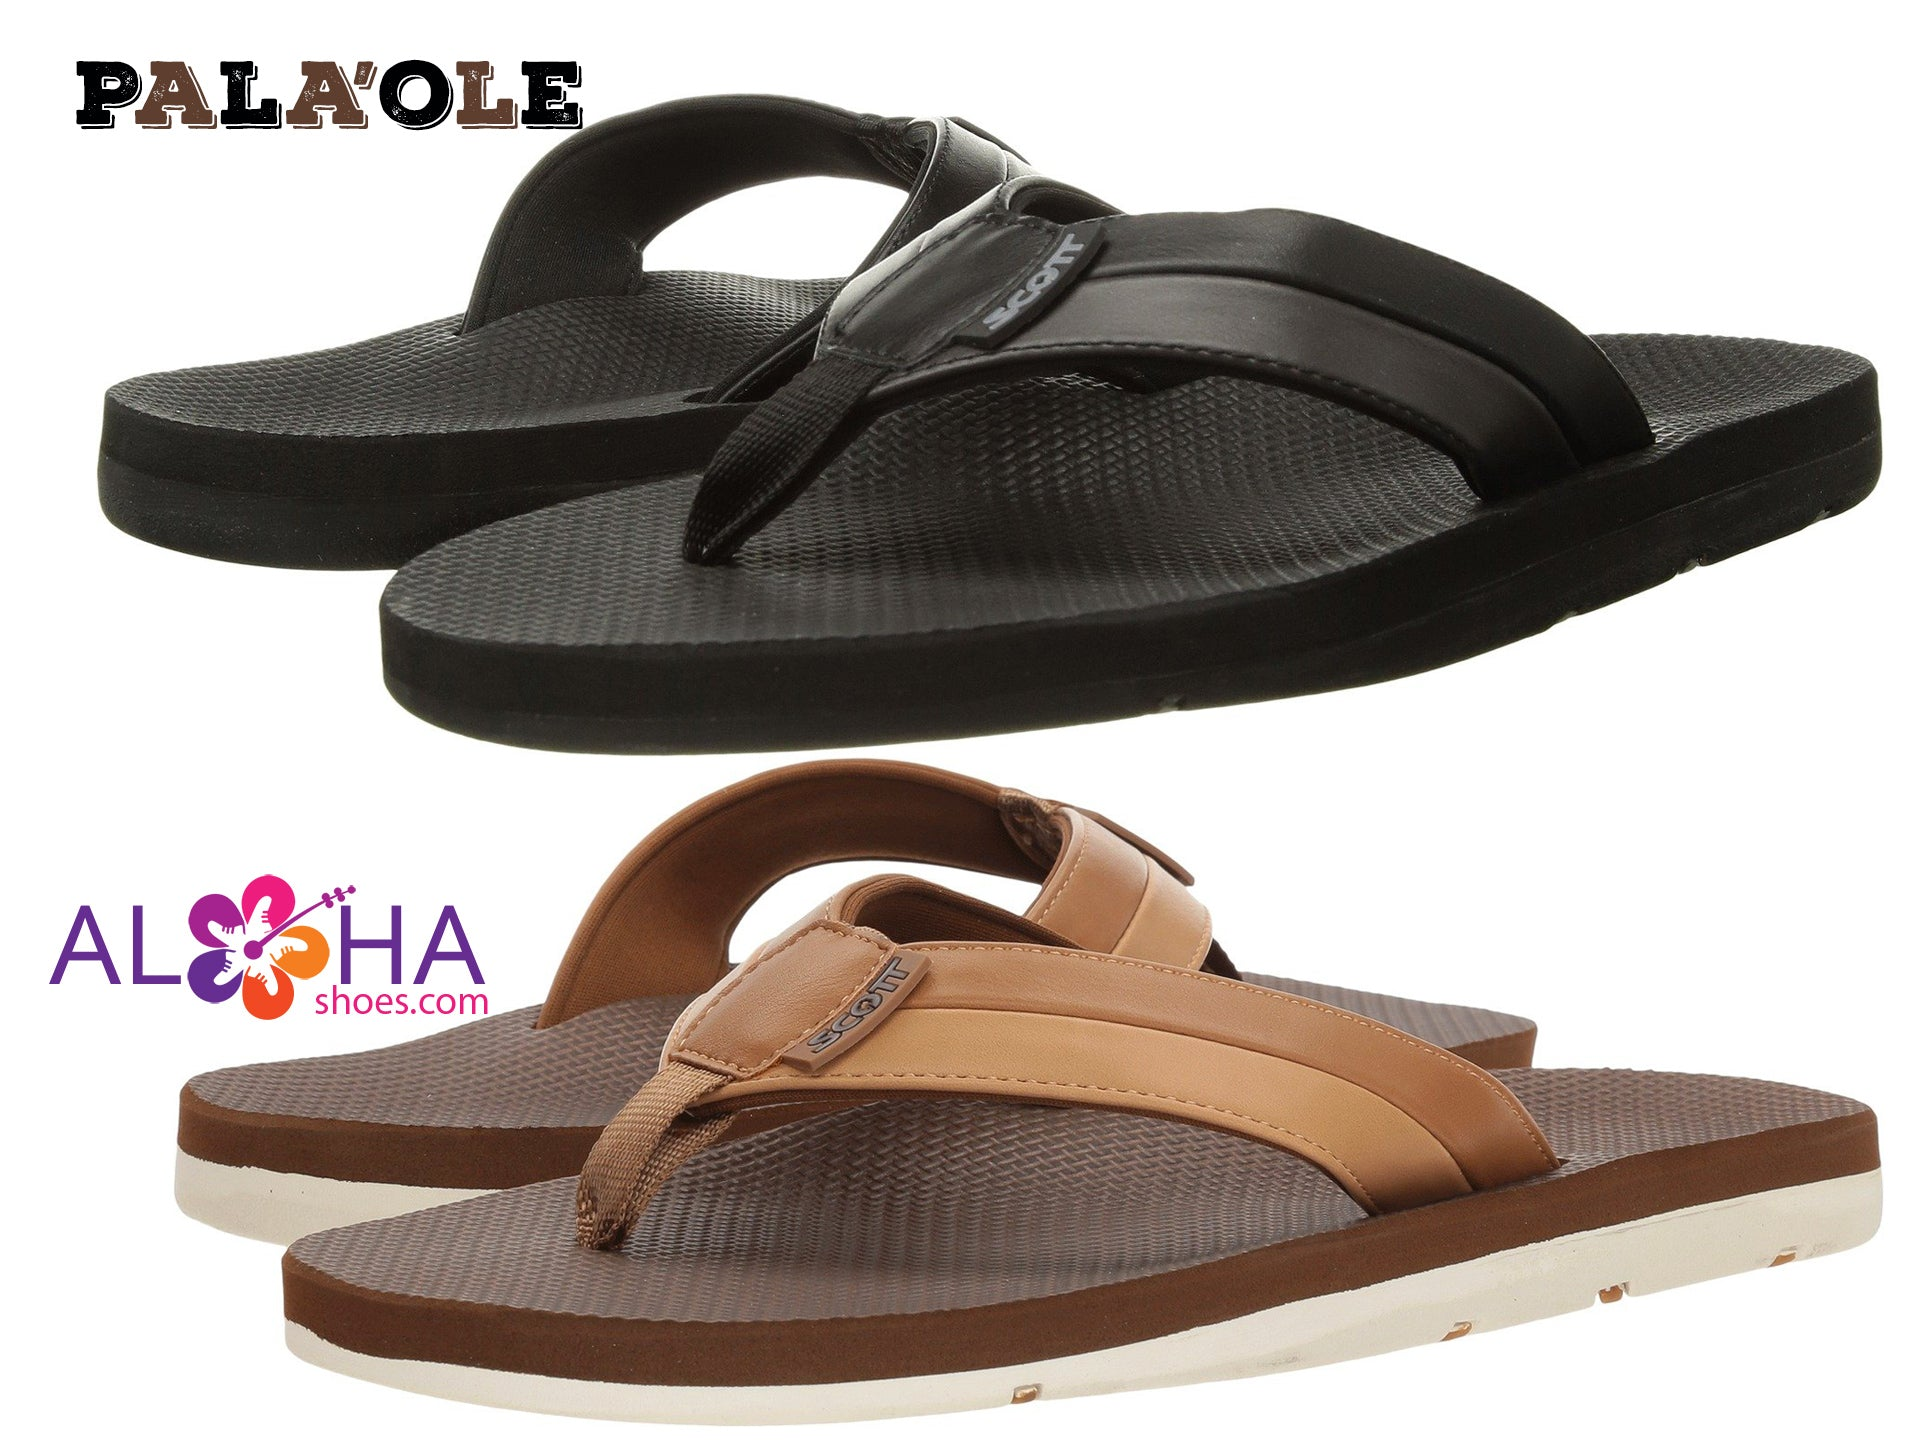 Scott Palaole Sophisticated Sandals | Styled Two-Toned Arch Support - AlohaShoes.com